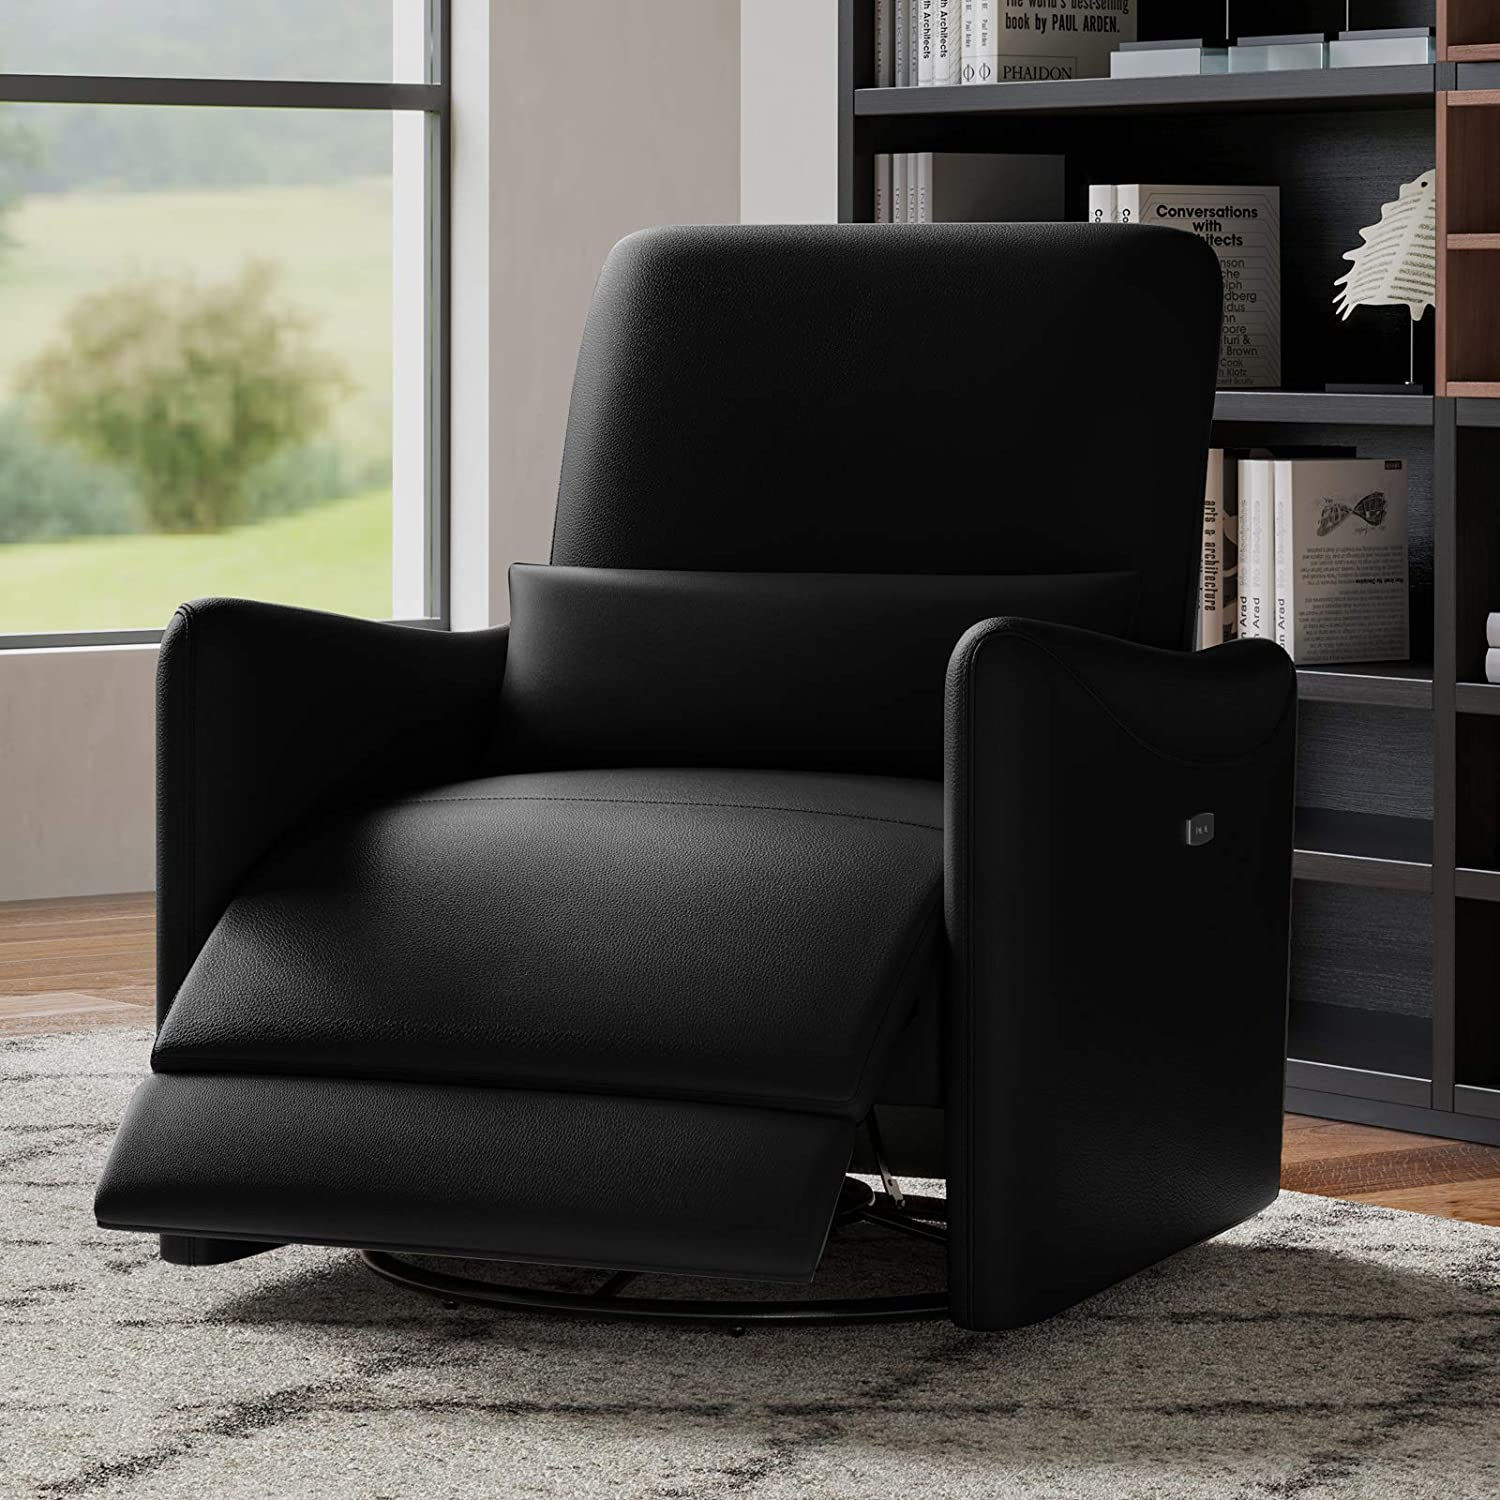 CHITA Power Recliner Swivel Glider,Upholstered Faux Leather Living Room Reclining Sofa Chair with Lumbar Support, Black